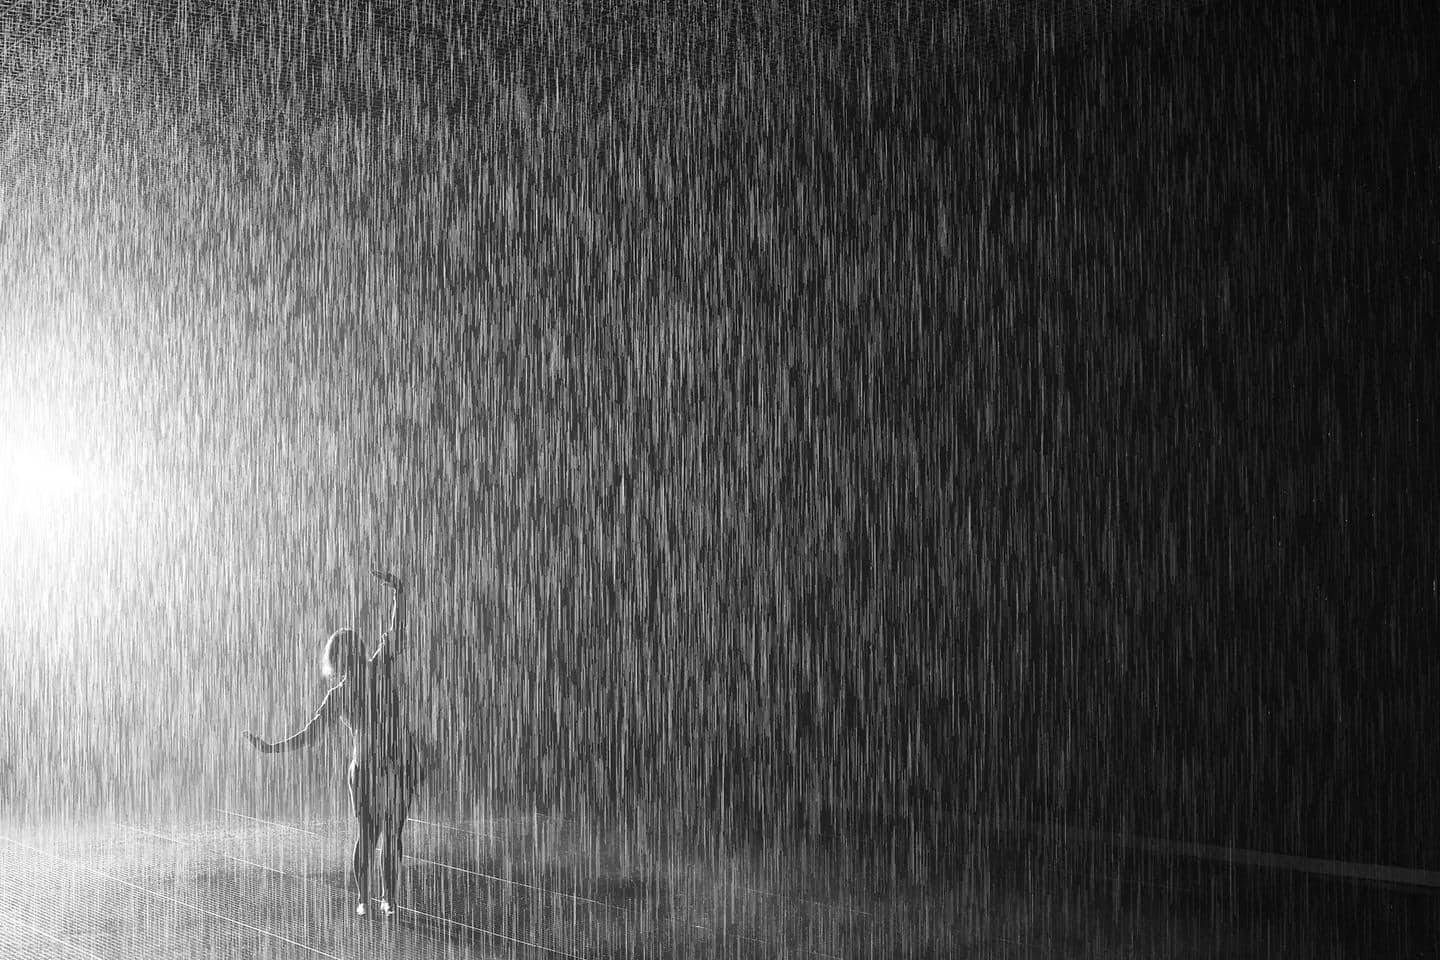 Hyundai Motor and LACMA's first project 'Rain Room' exhibit opens in Los Angeles